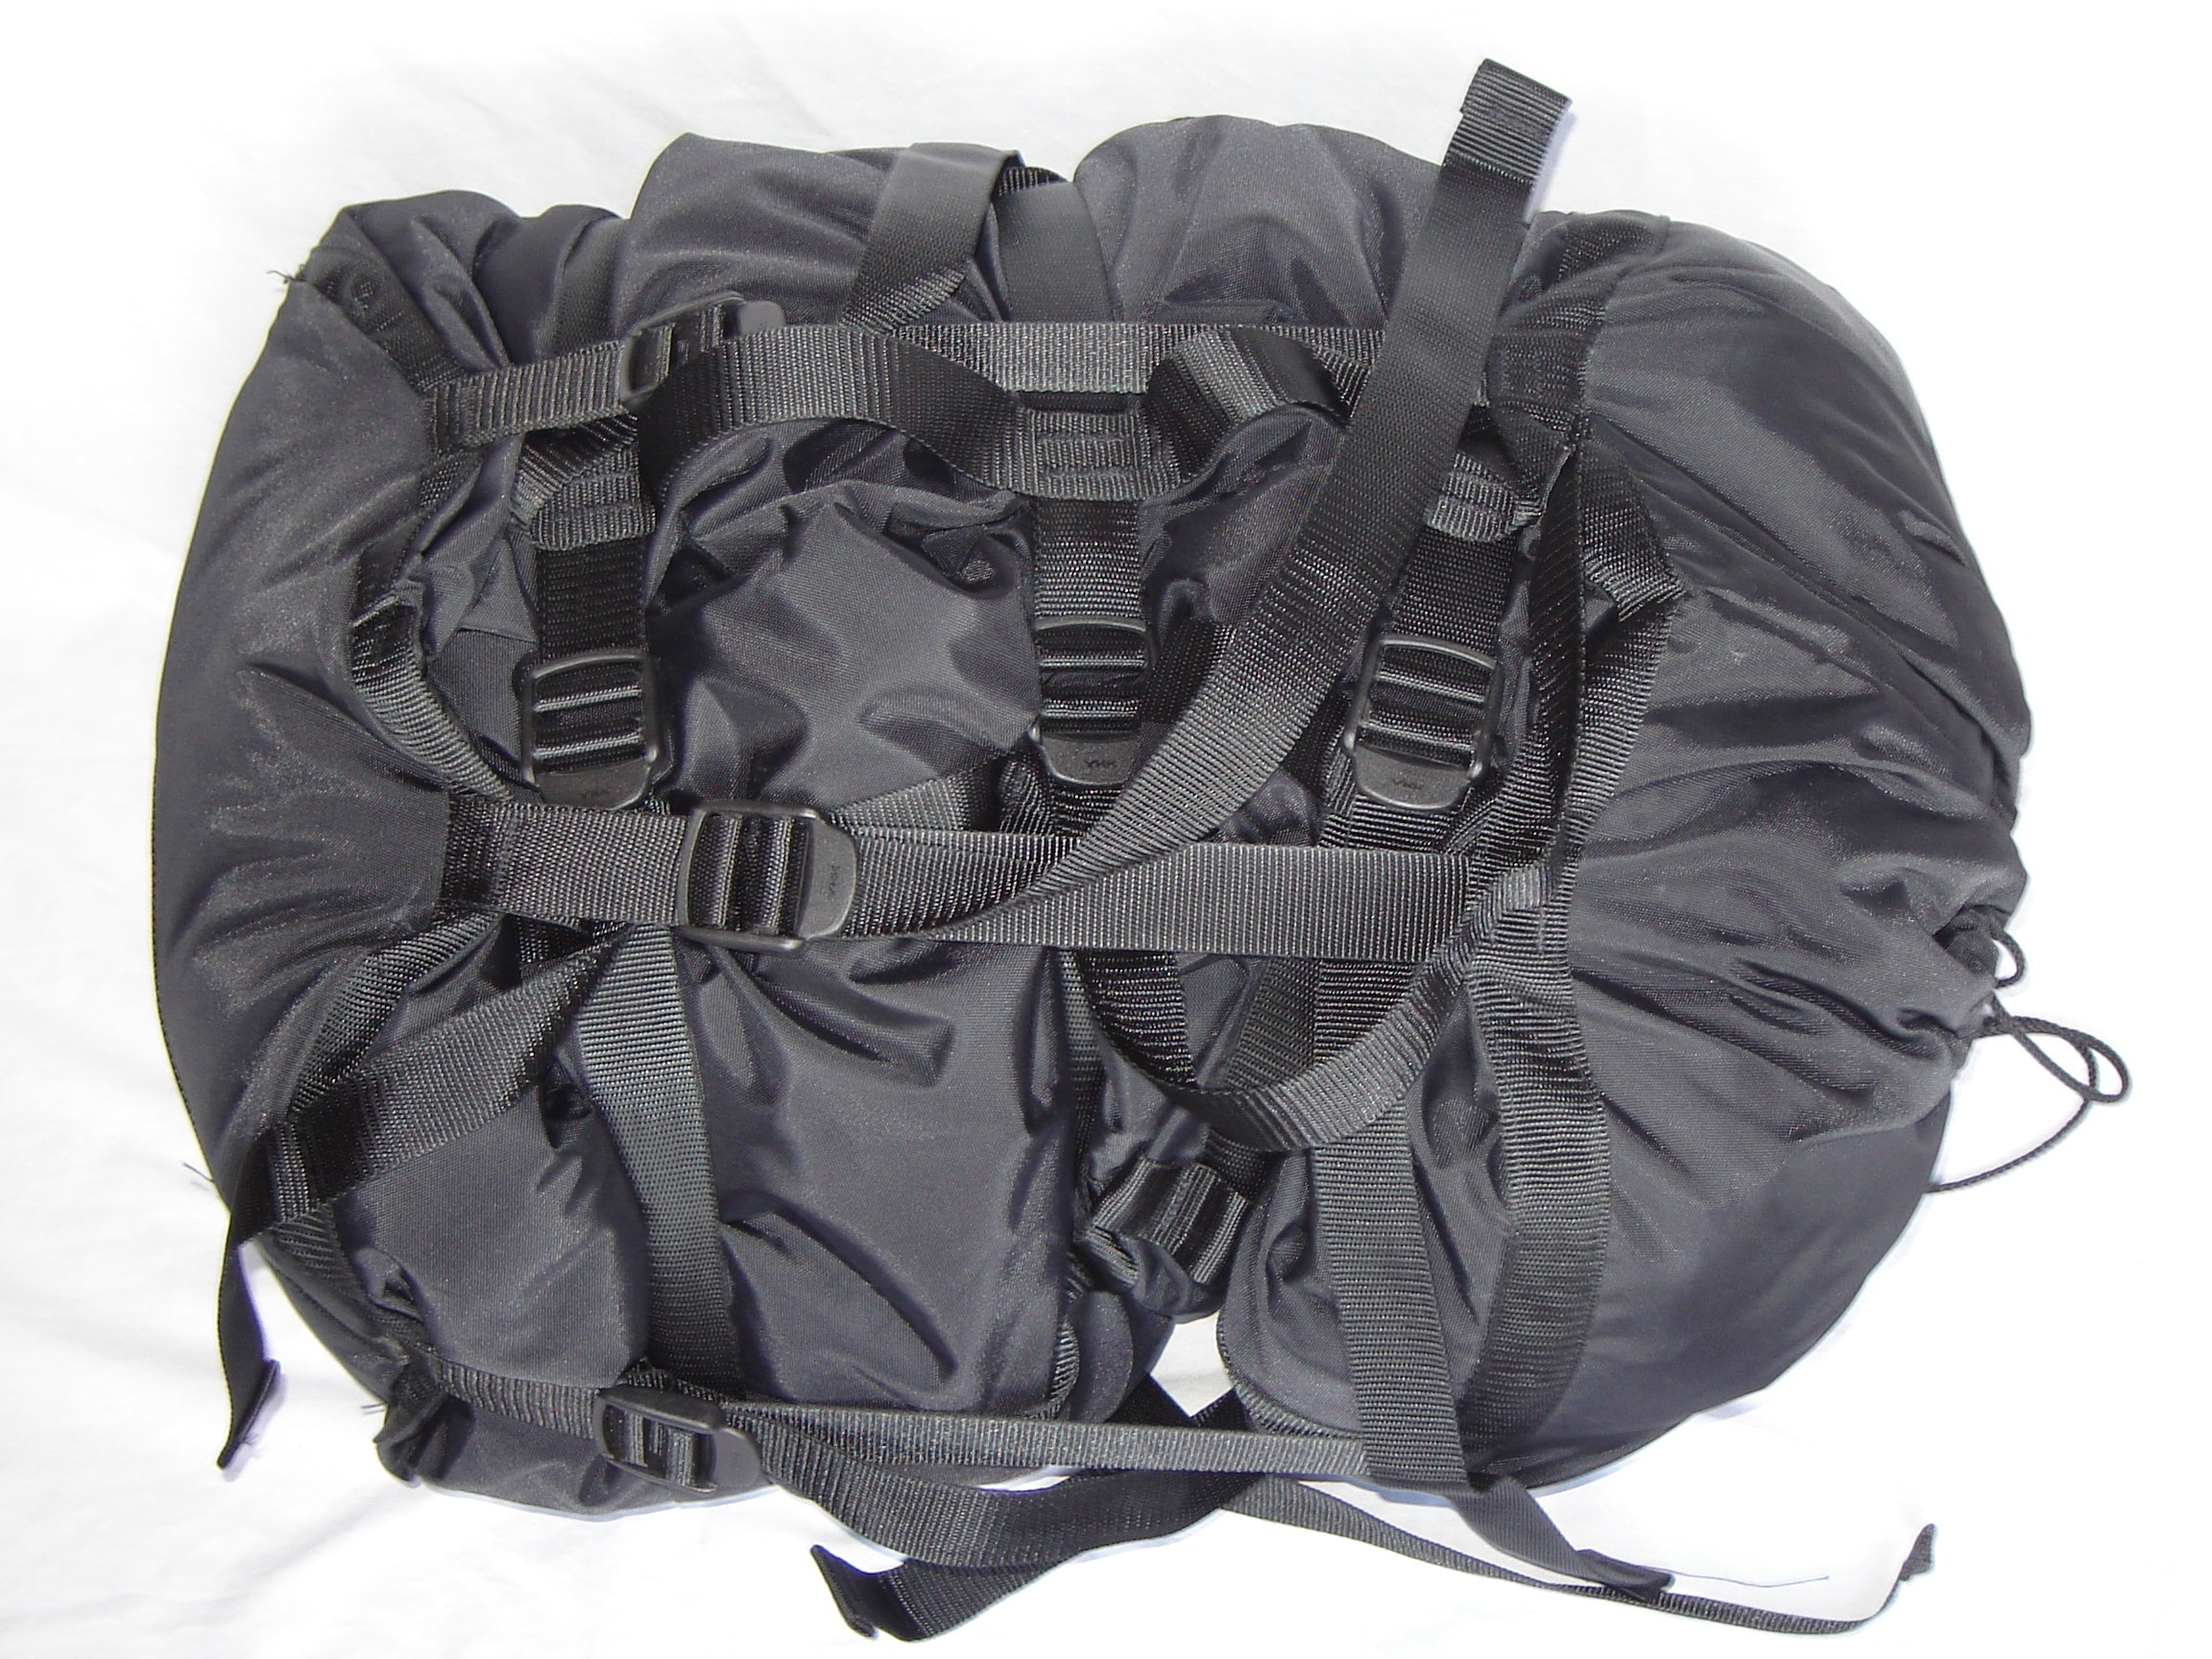 GOVERNMENT CONTRACTOR US Military Sleeping Bag Compression Stuff Sack for MSS, Black by GOVERNMENT CONTRACTOR